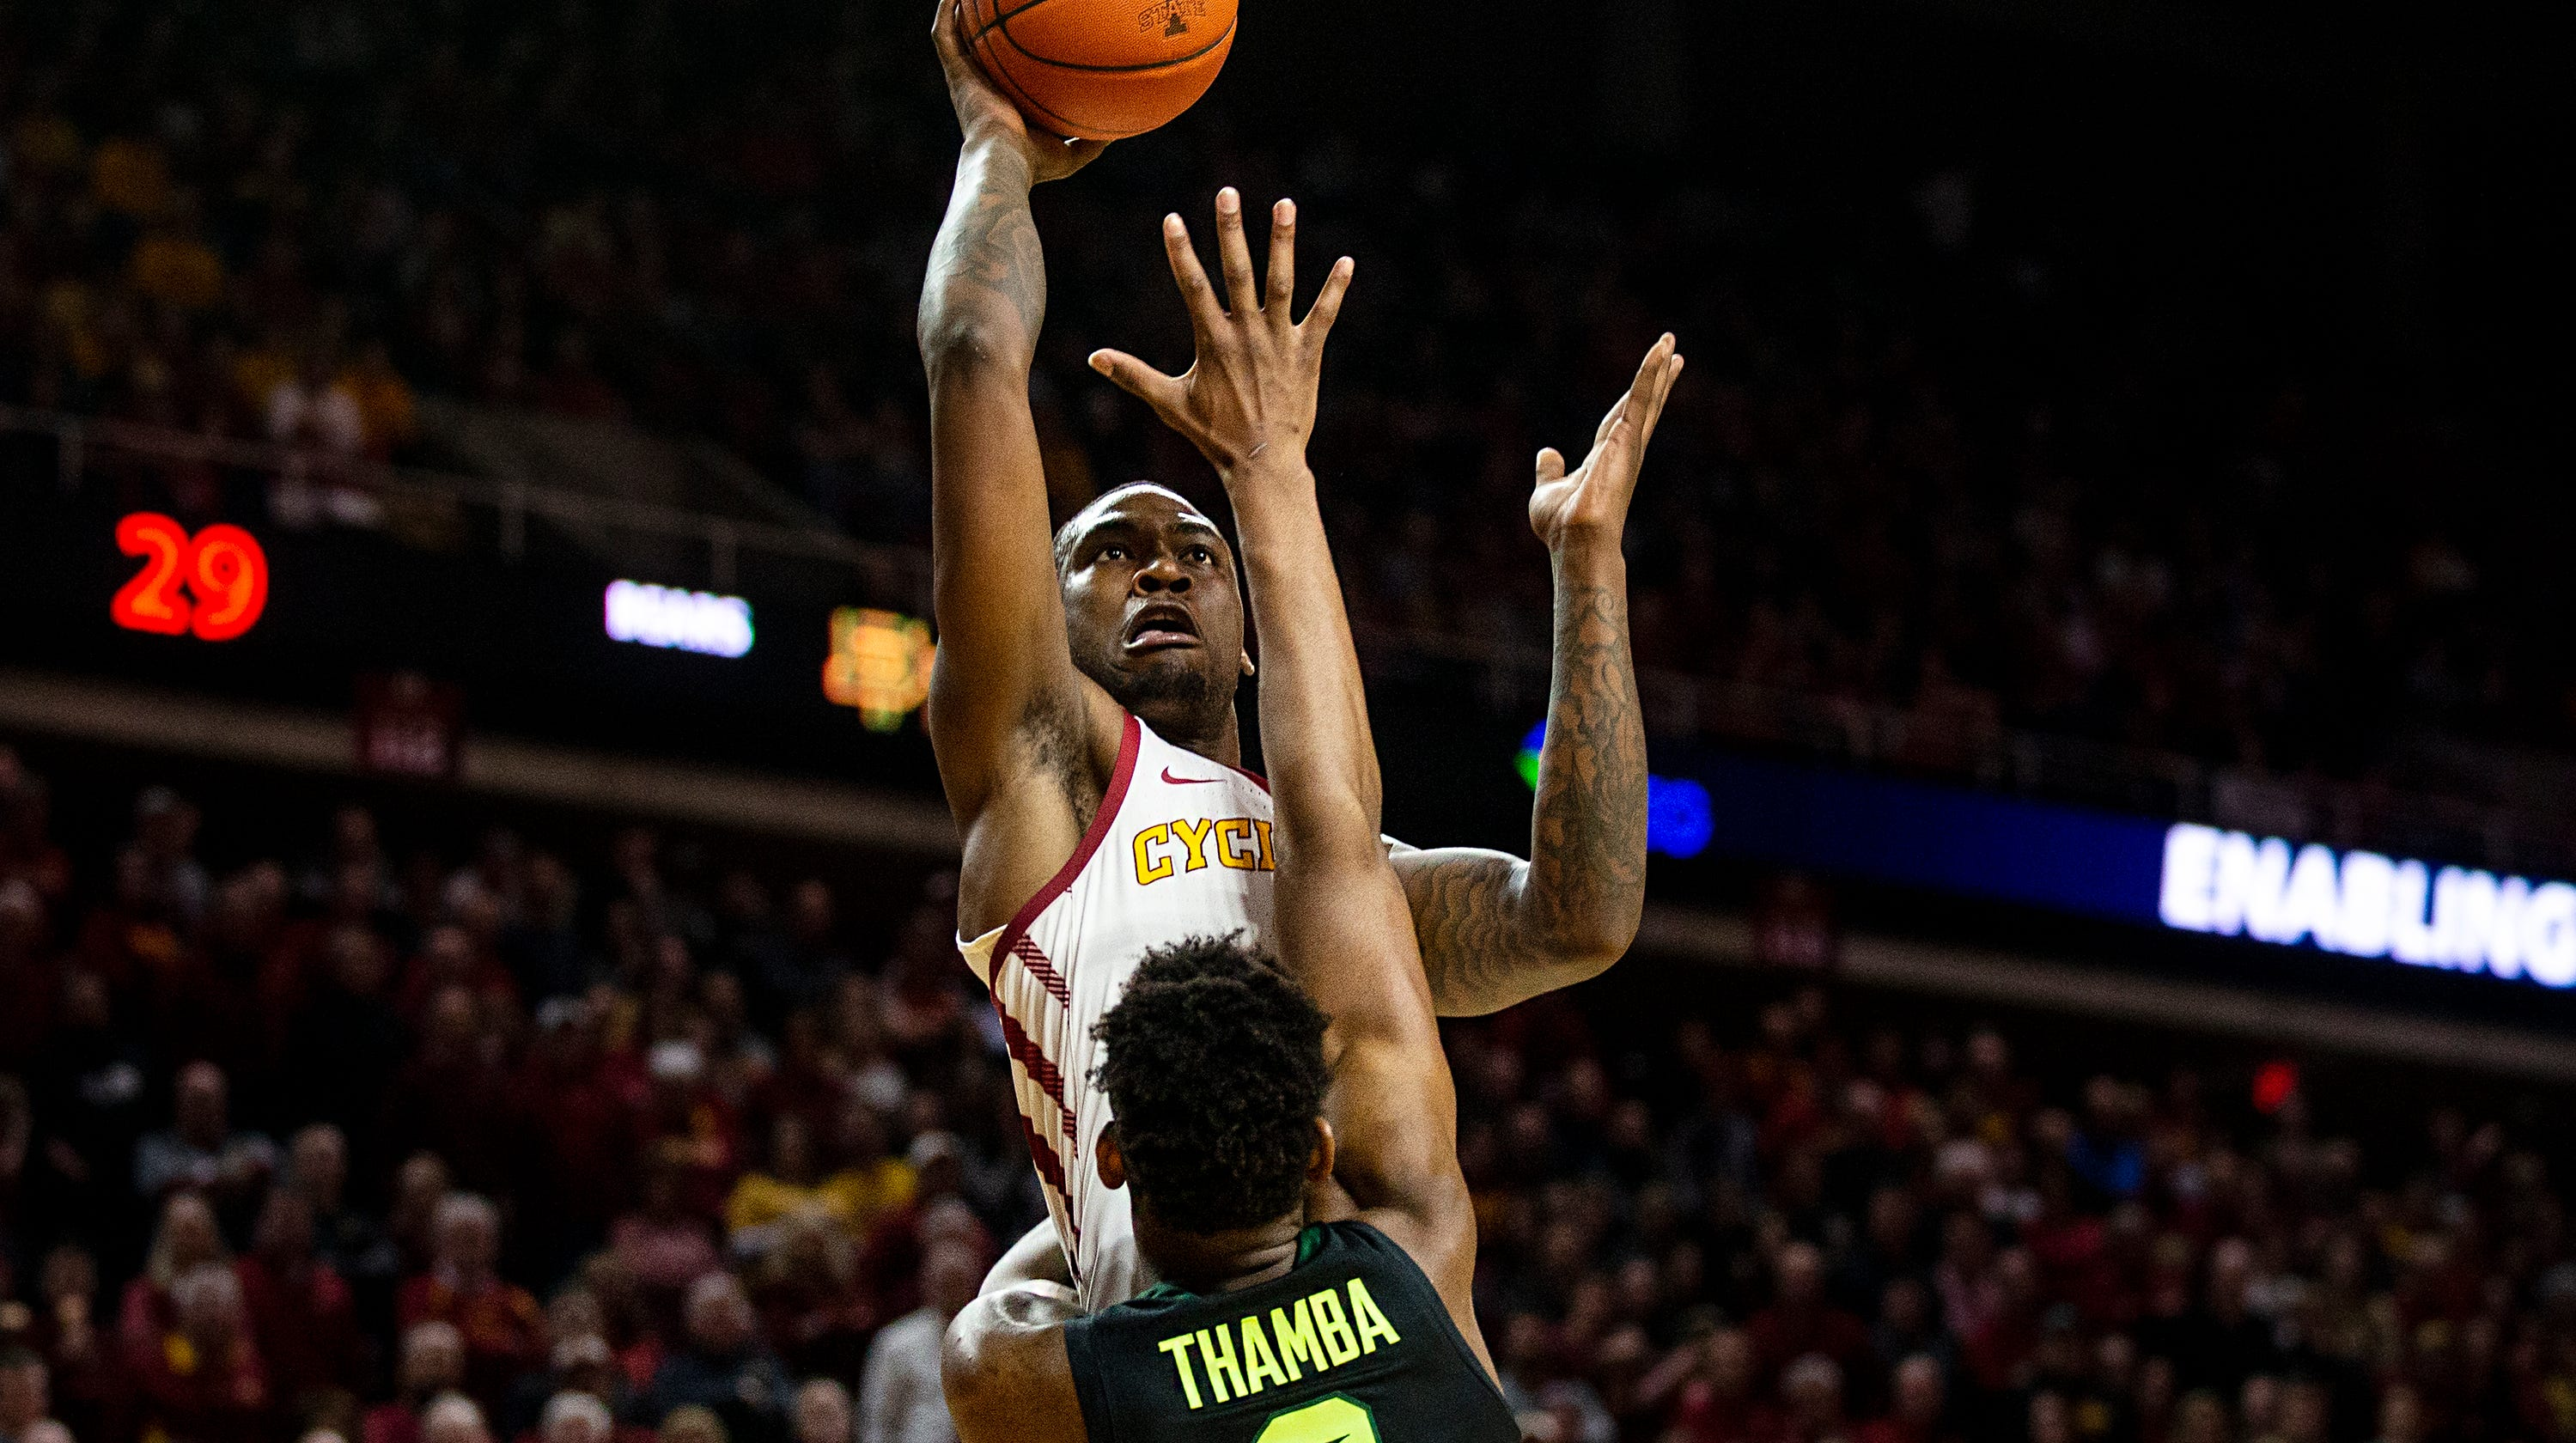 Peterson: Iowa State loses another game at Hilton Coliseum